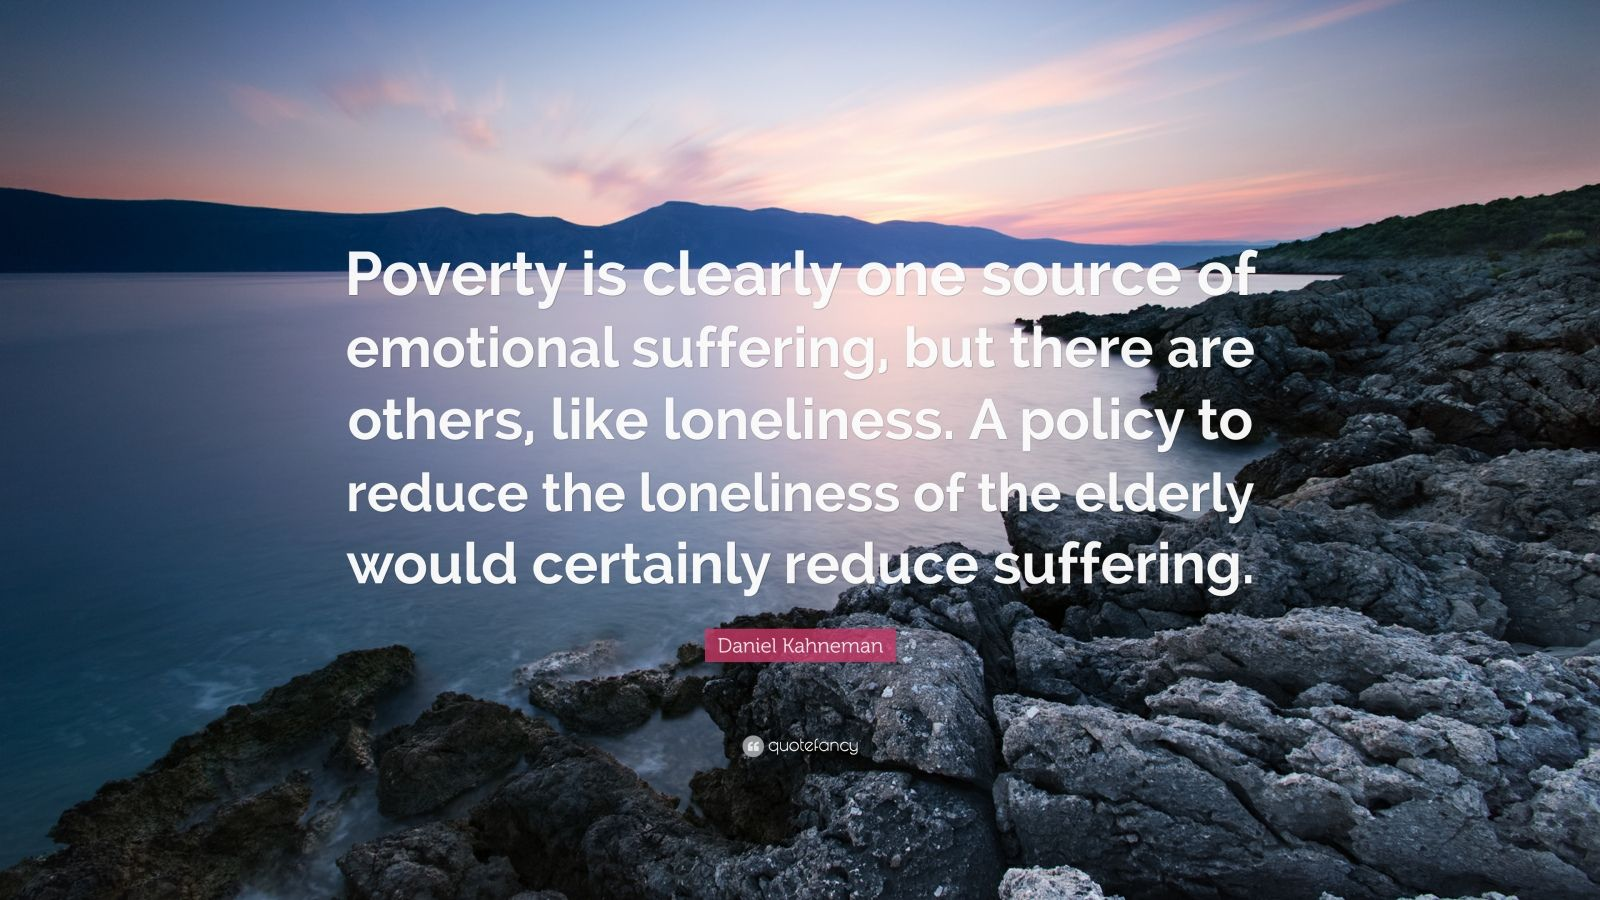 """Daniel Kahneman Quote: """"Poverty is clearly one source of emotional suffering, but there are others, like loneliness. A policy to reduce the loneliness of the elderly would certainly reduce suffering."""""""